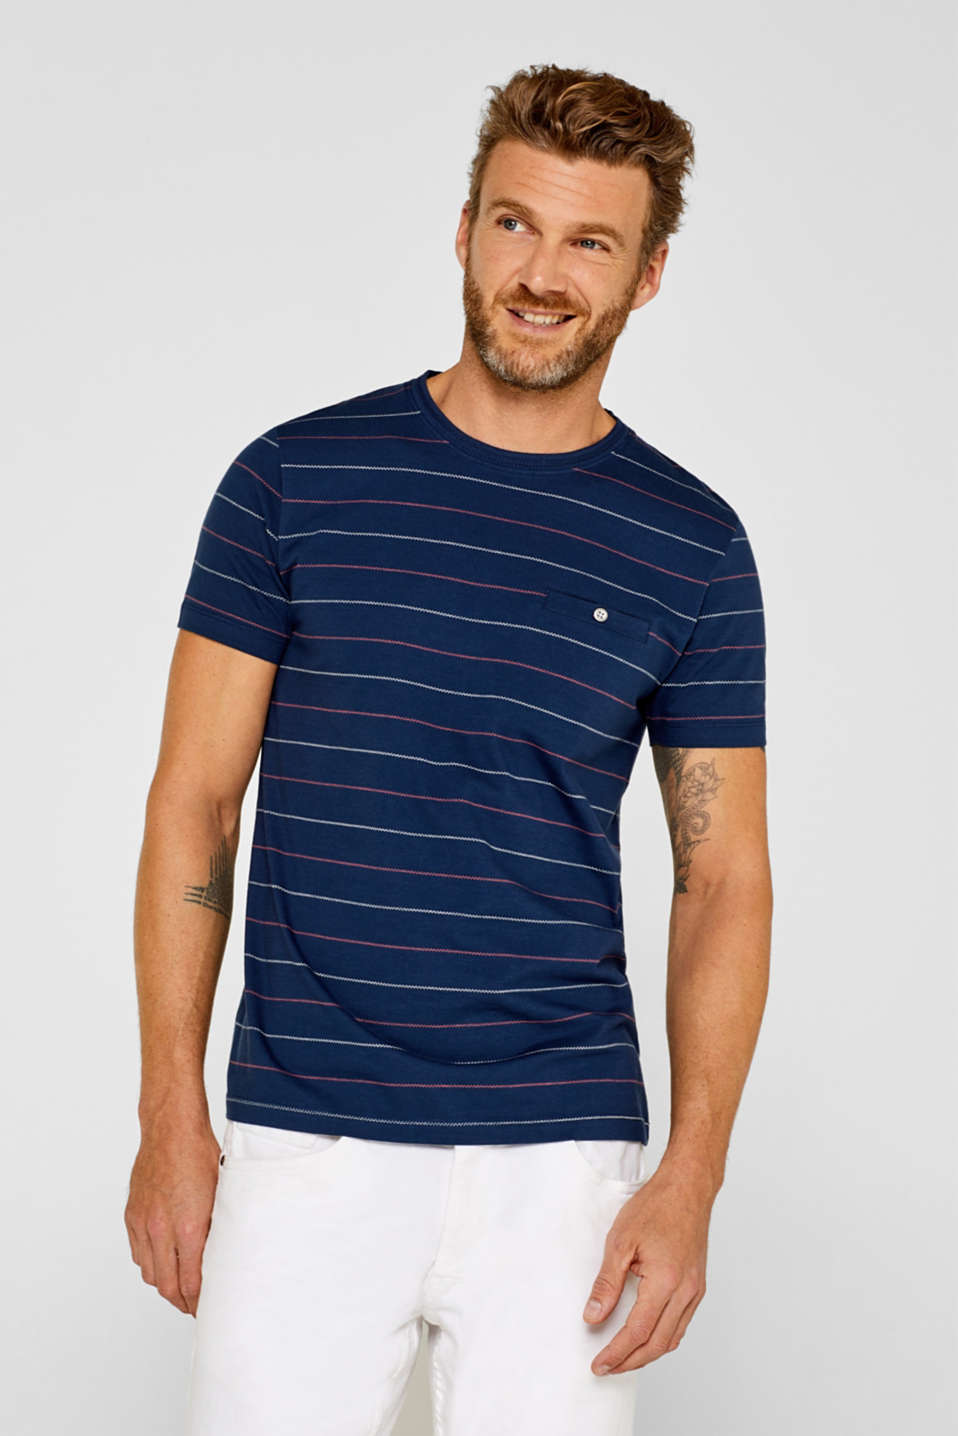 Esprit - 100% cotton jersey T-shirt with embroidery